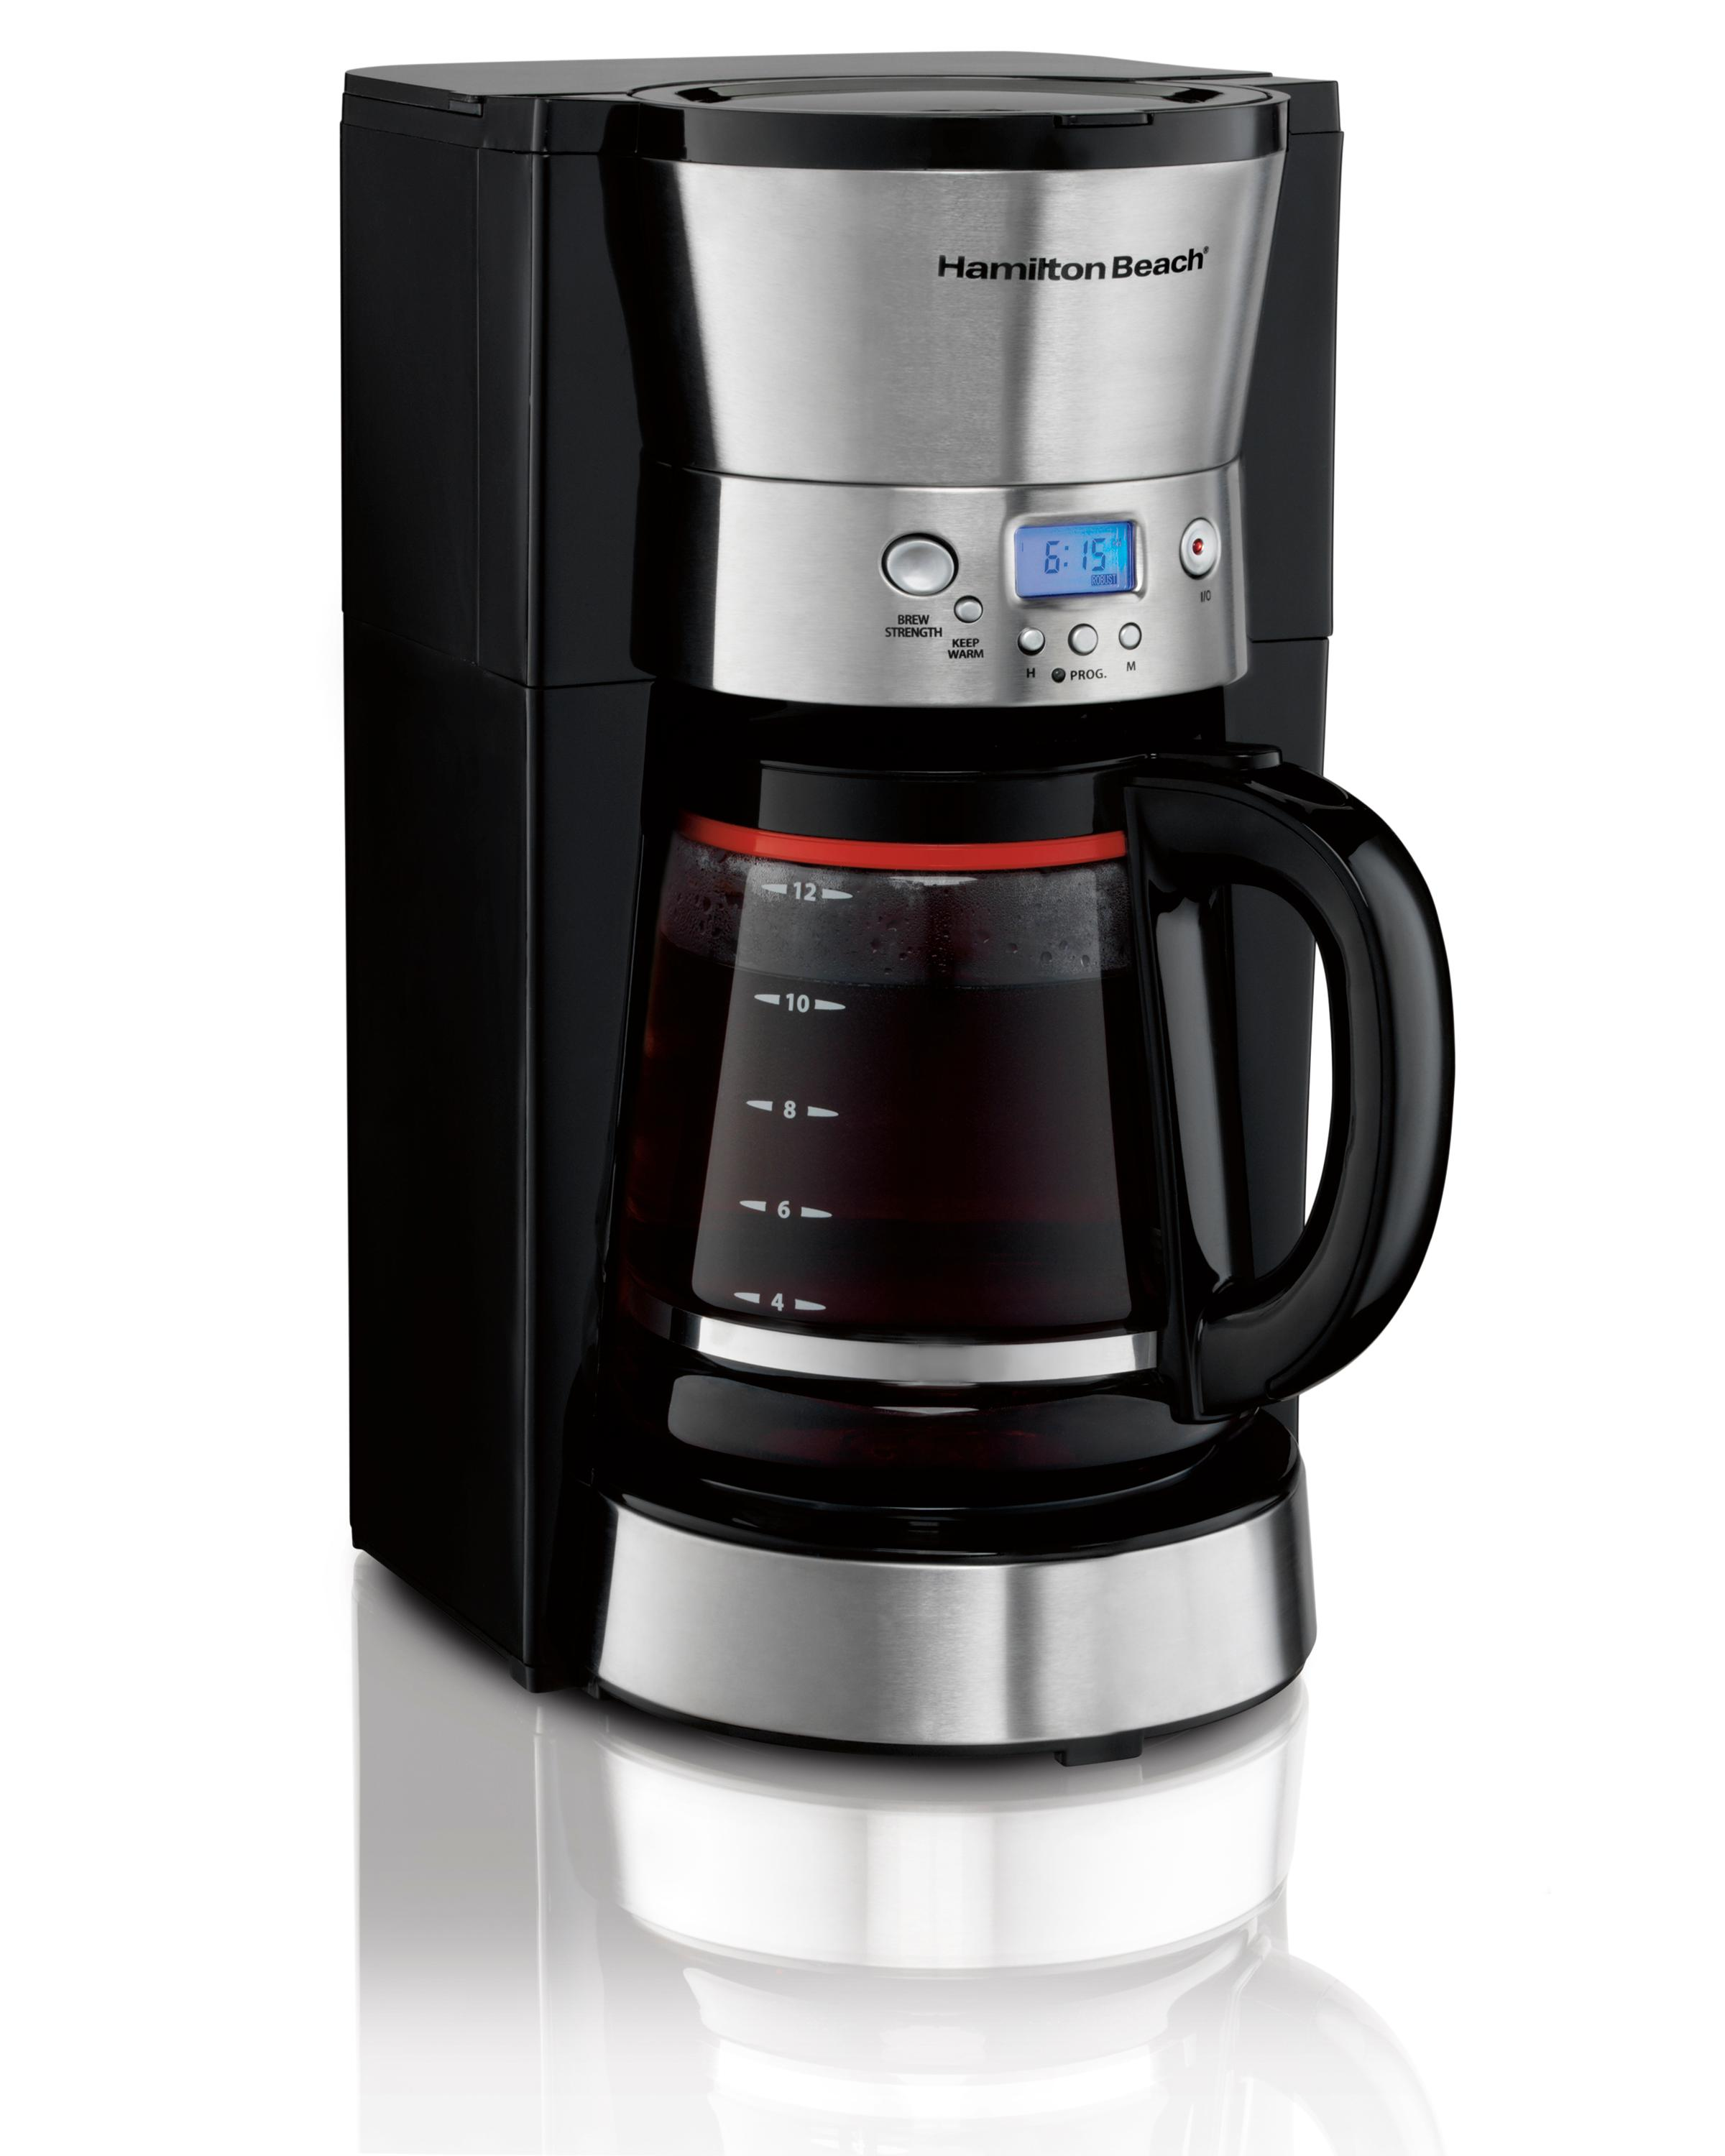 Programmable Filter Coffee Maker : Amazon.com: Hamilton Beach 46895 12 Cup Programmable Coffee Maker, Black: Kitchen & Dining